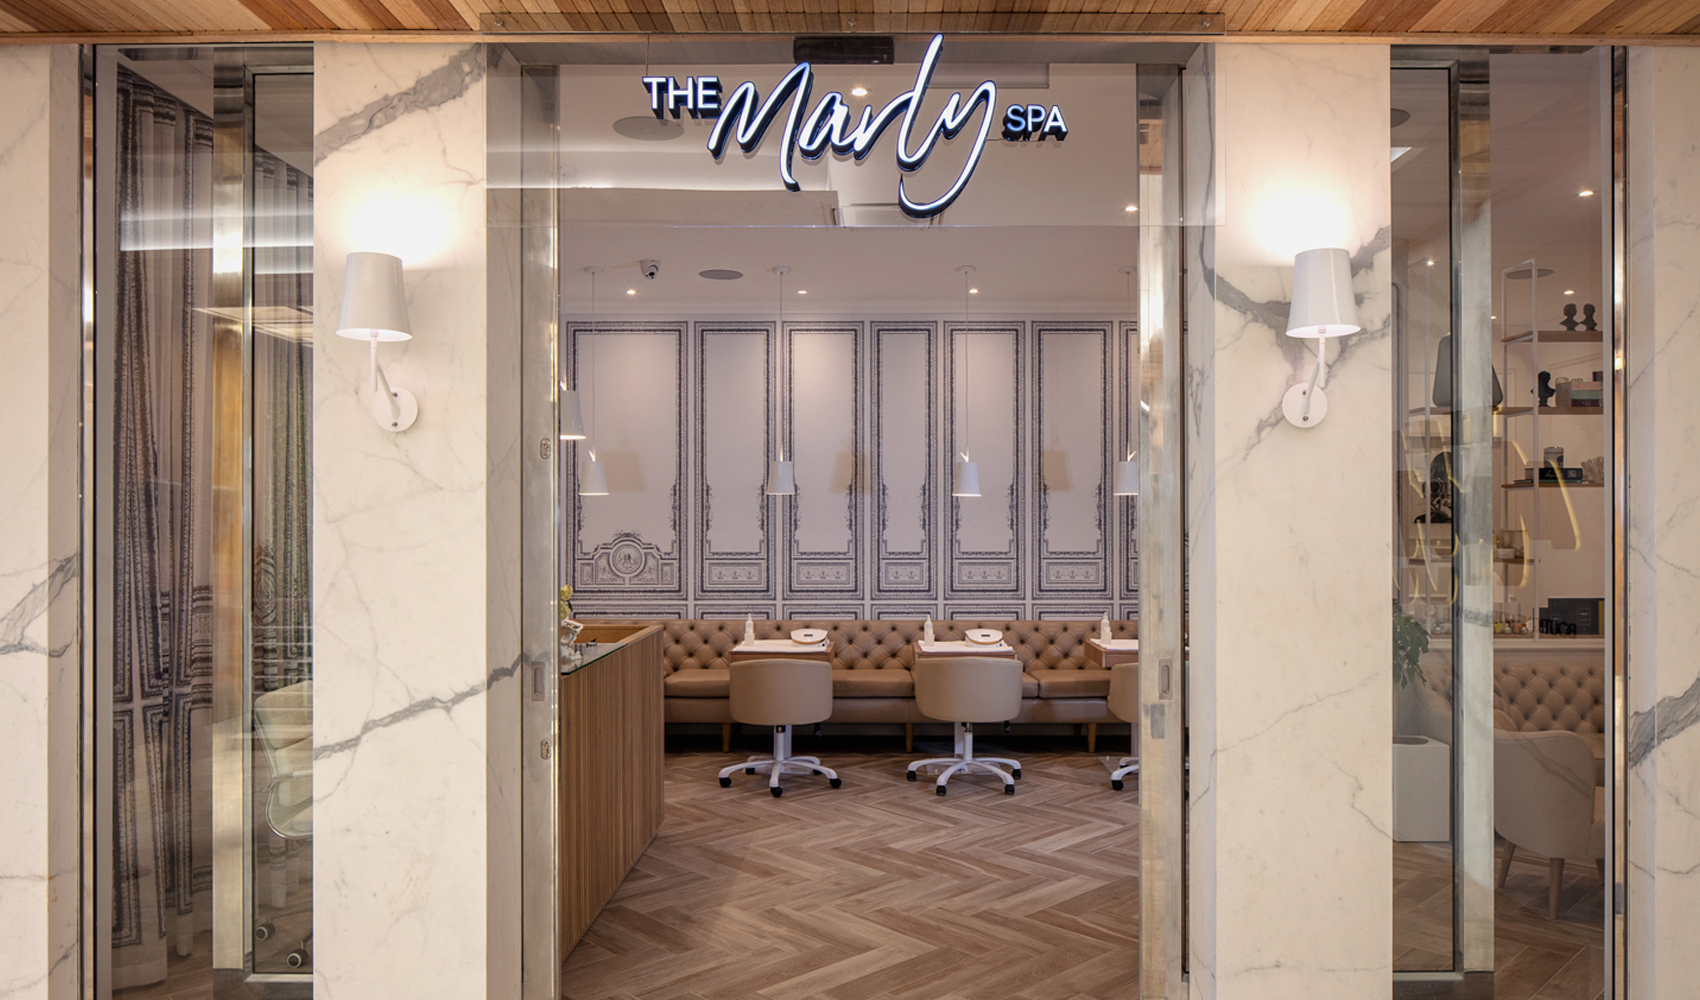 The_Marly_Spa–unwind_in_style